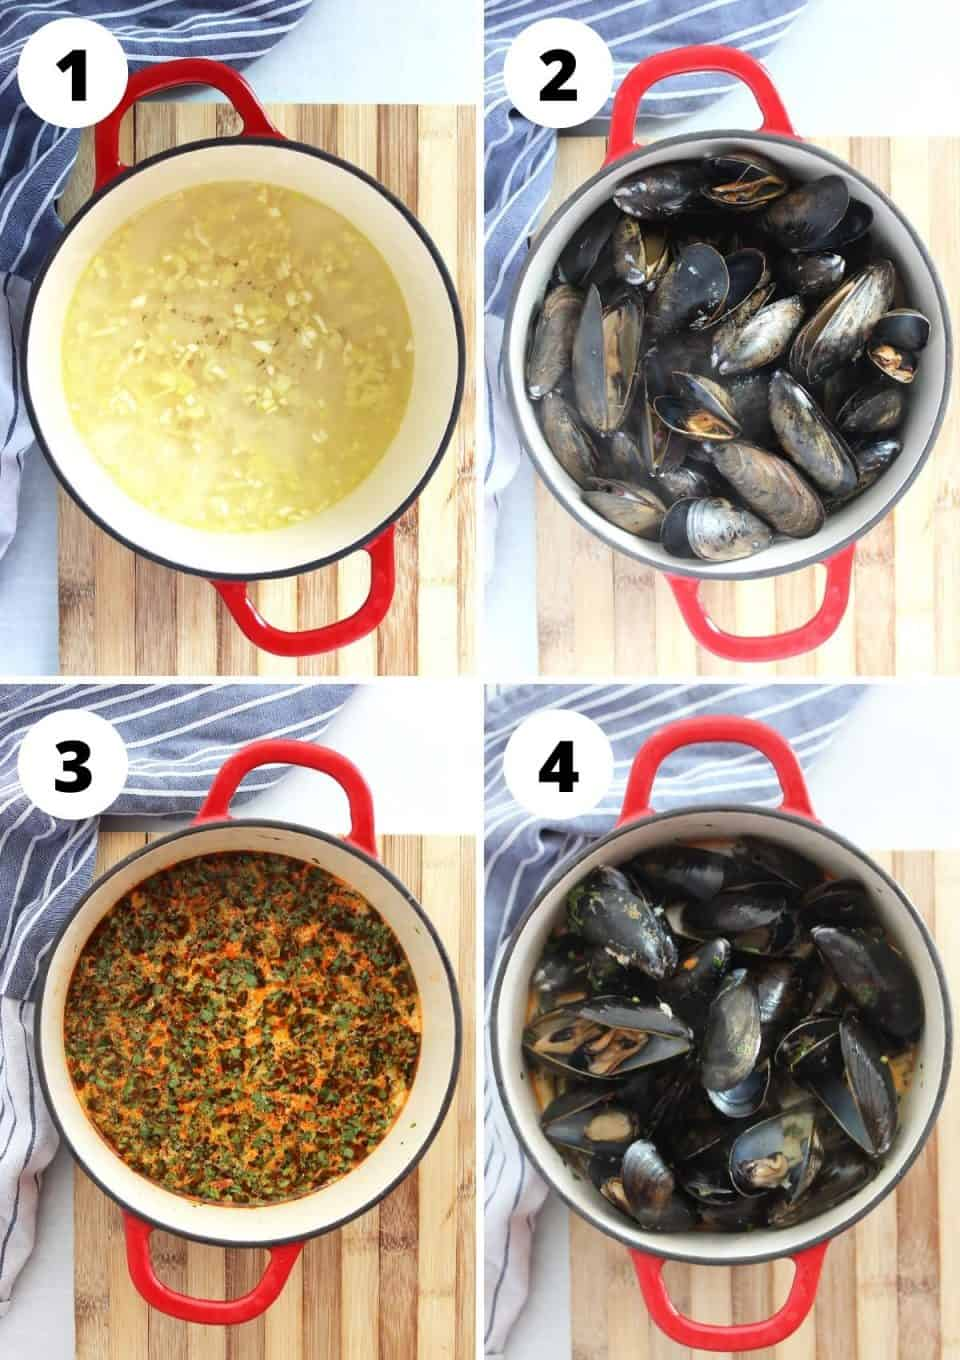 Four step by step photos to show how to cook the mussels.